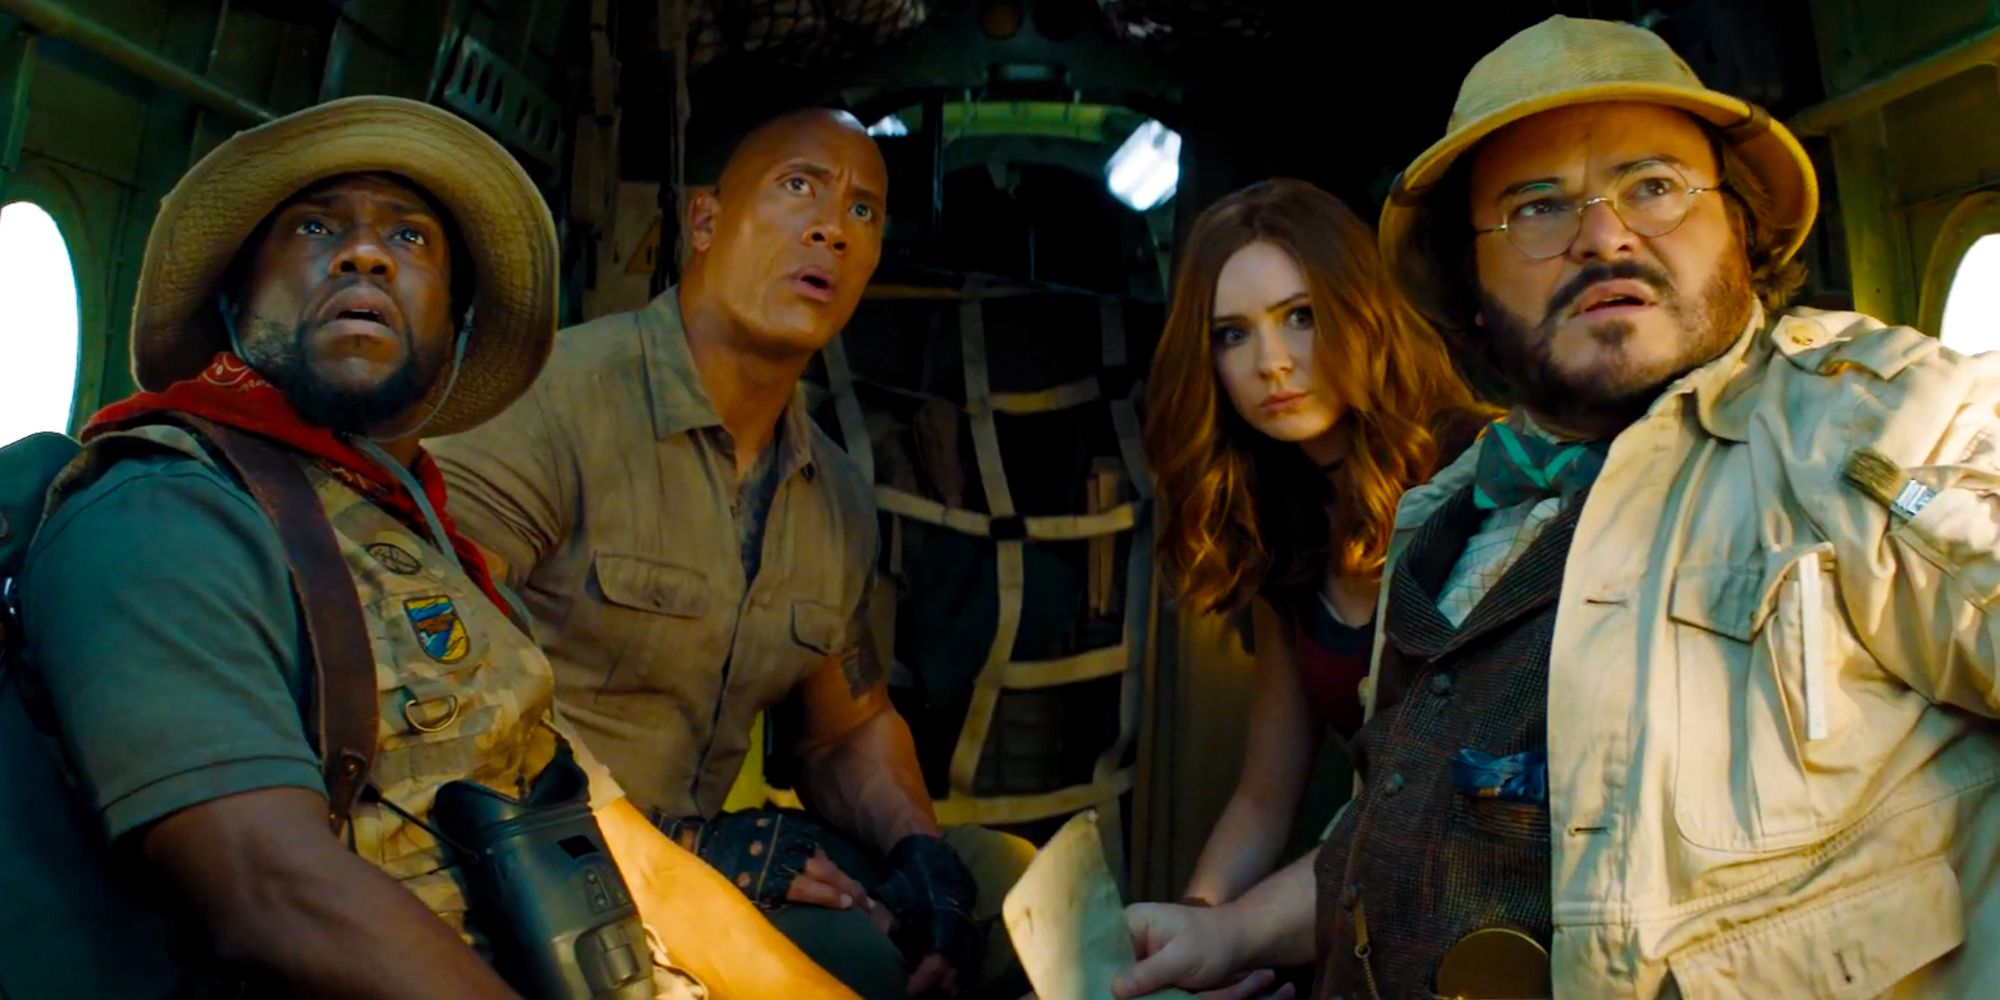 Jumanji: The Next Level Introduces Two New OP Game Characters